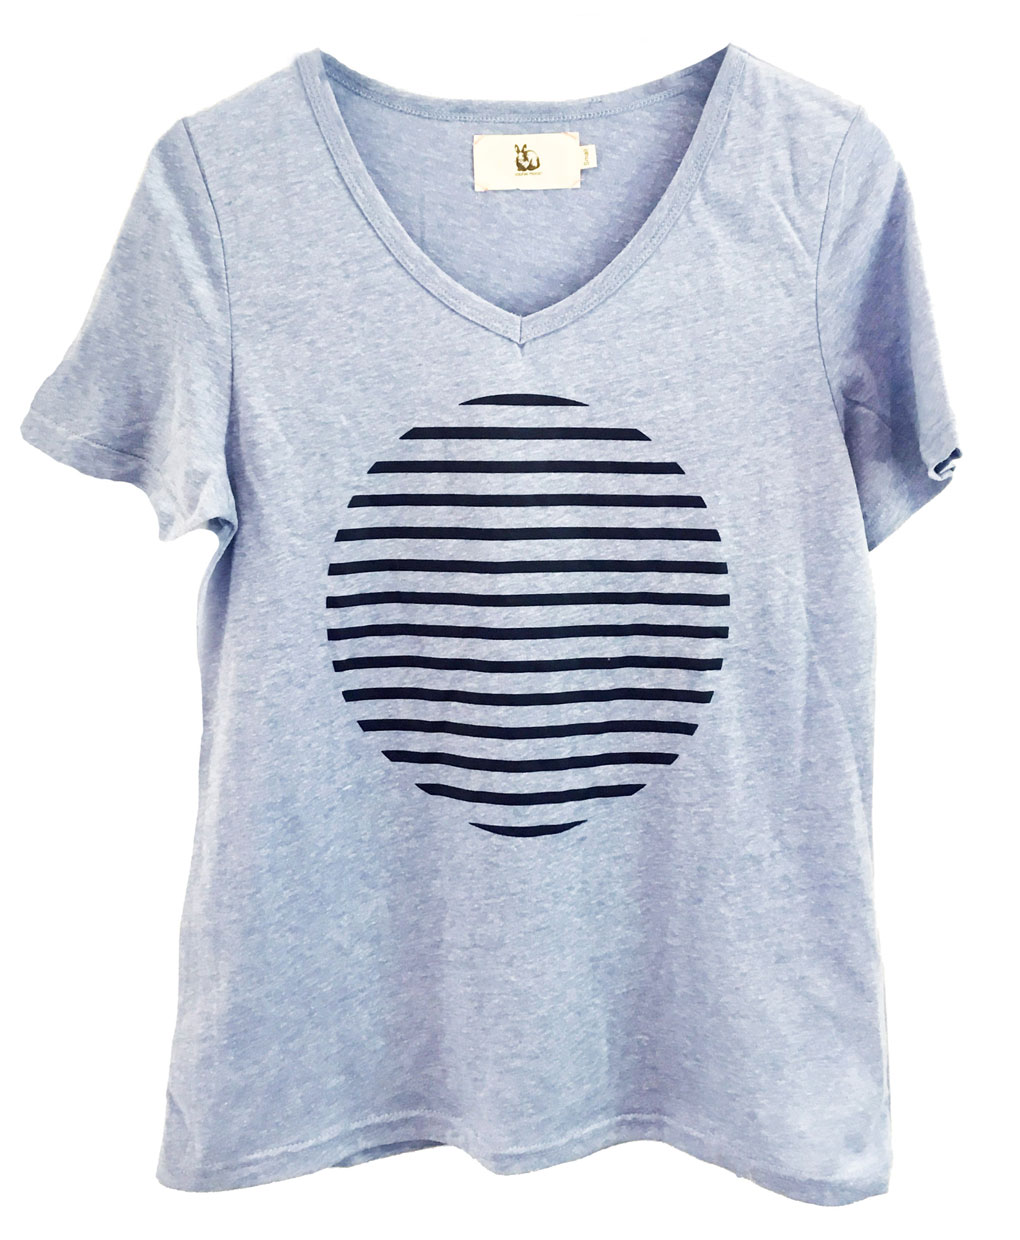 Stripe spot cotton tshirt